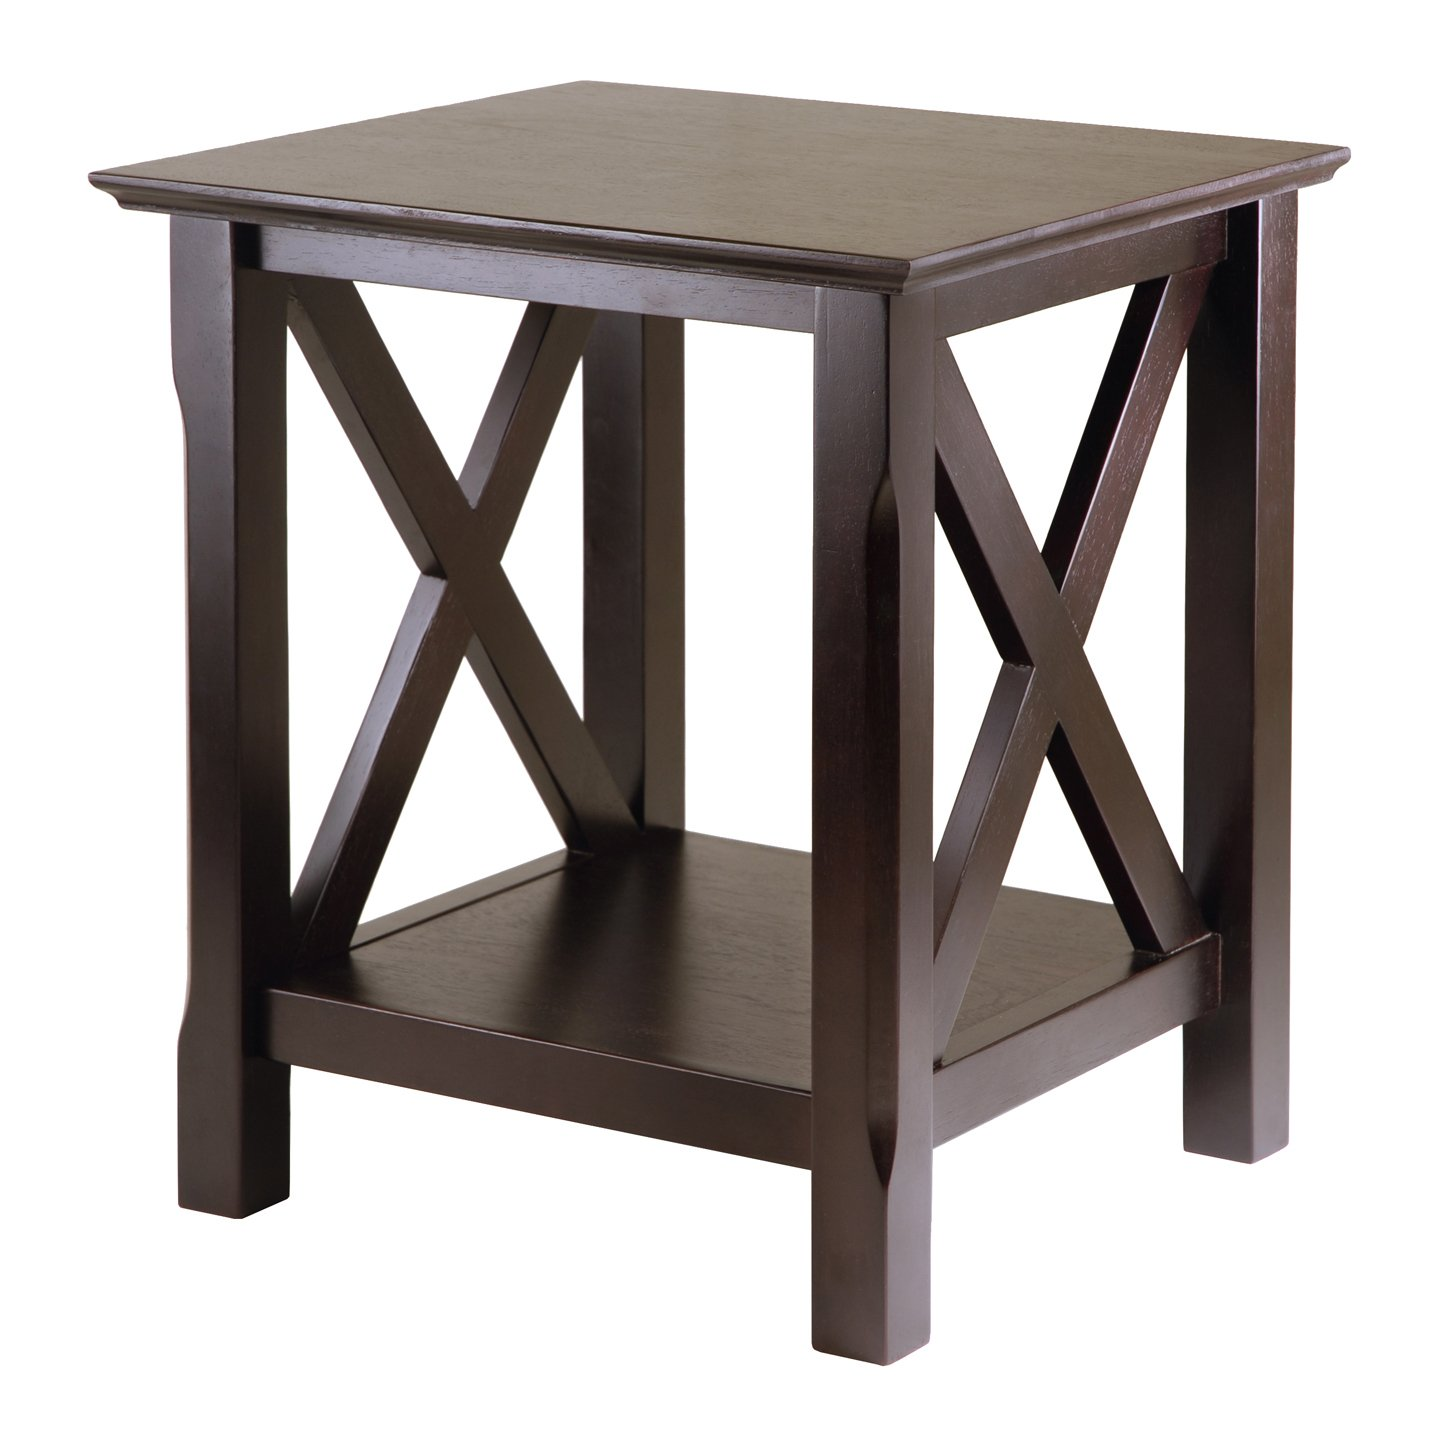 Winsome Xola Occasional Table, Cappuccino by Winsome